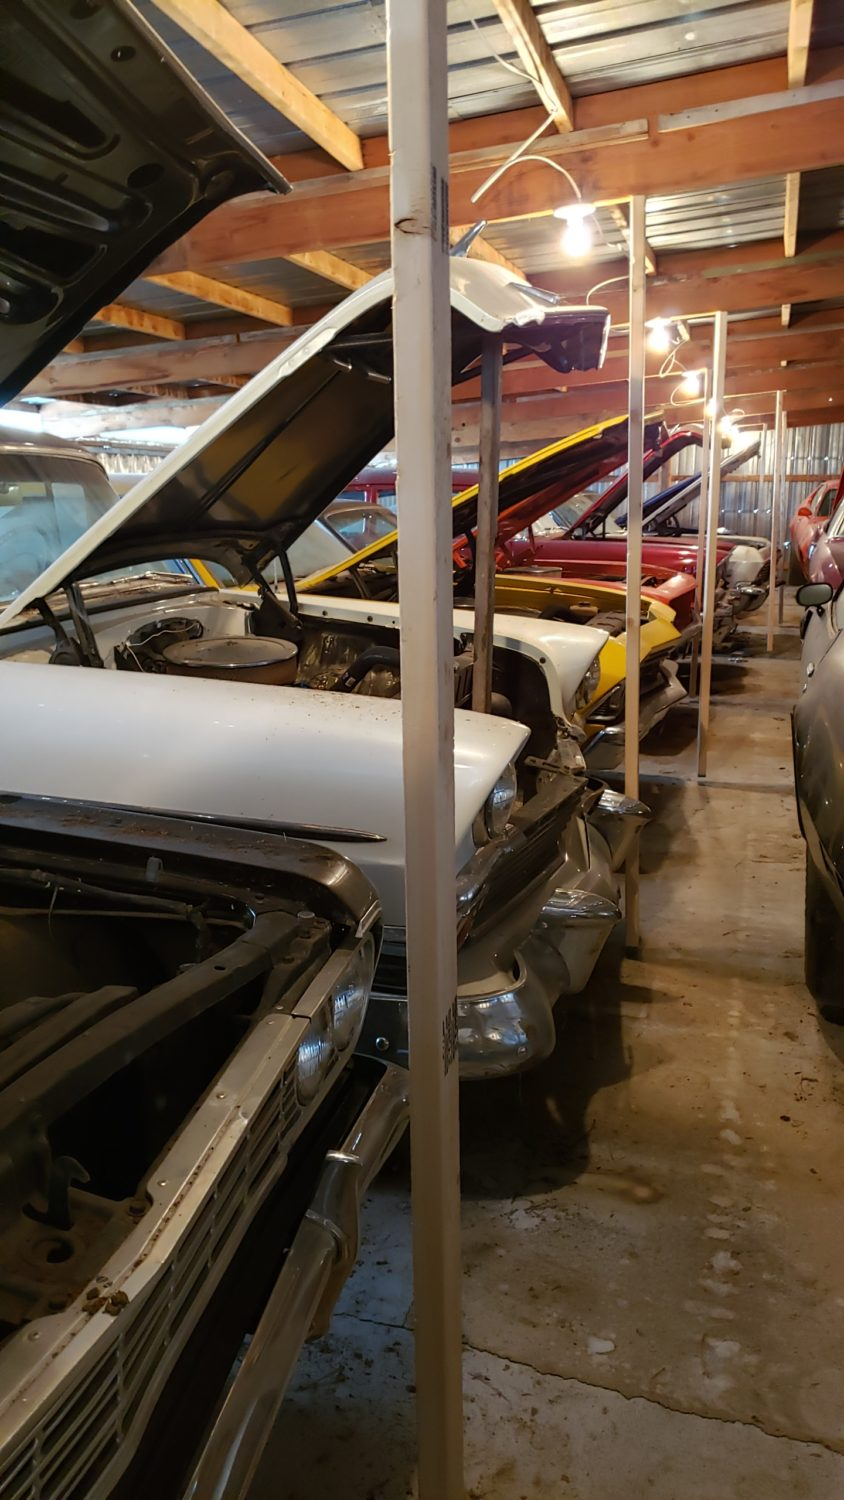 Iowa Muscle Car Hoard at Auction! The Coyote Johnson Collection Auction - image 10